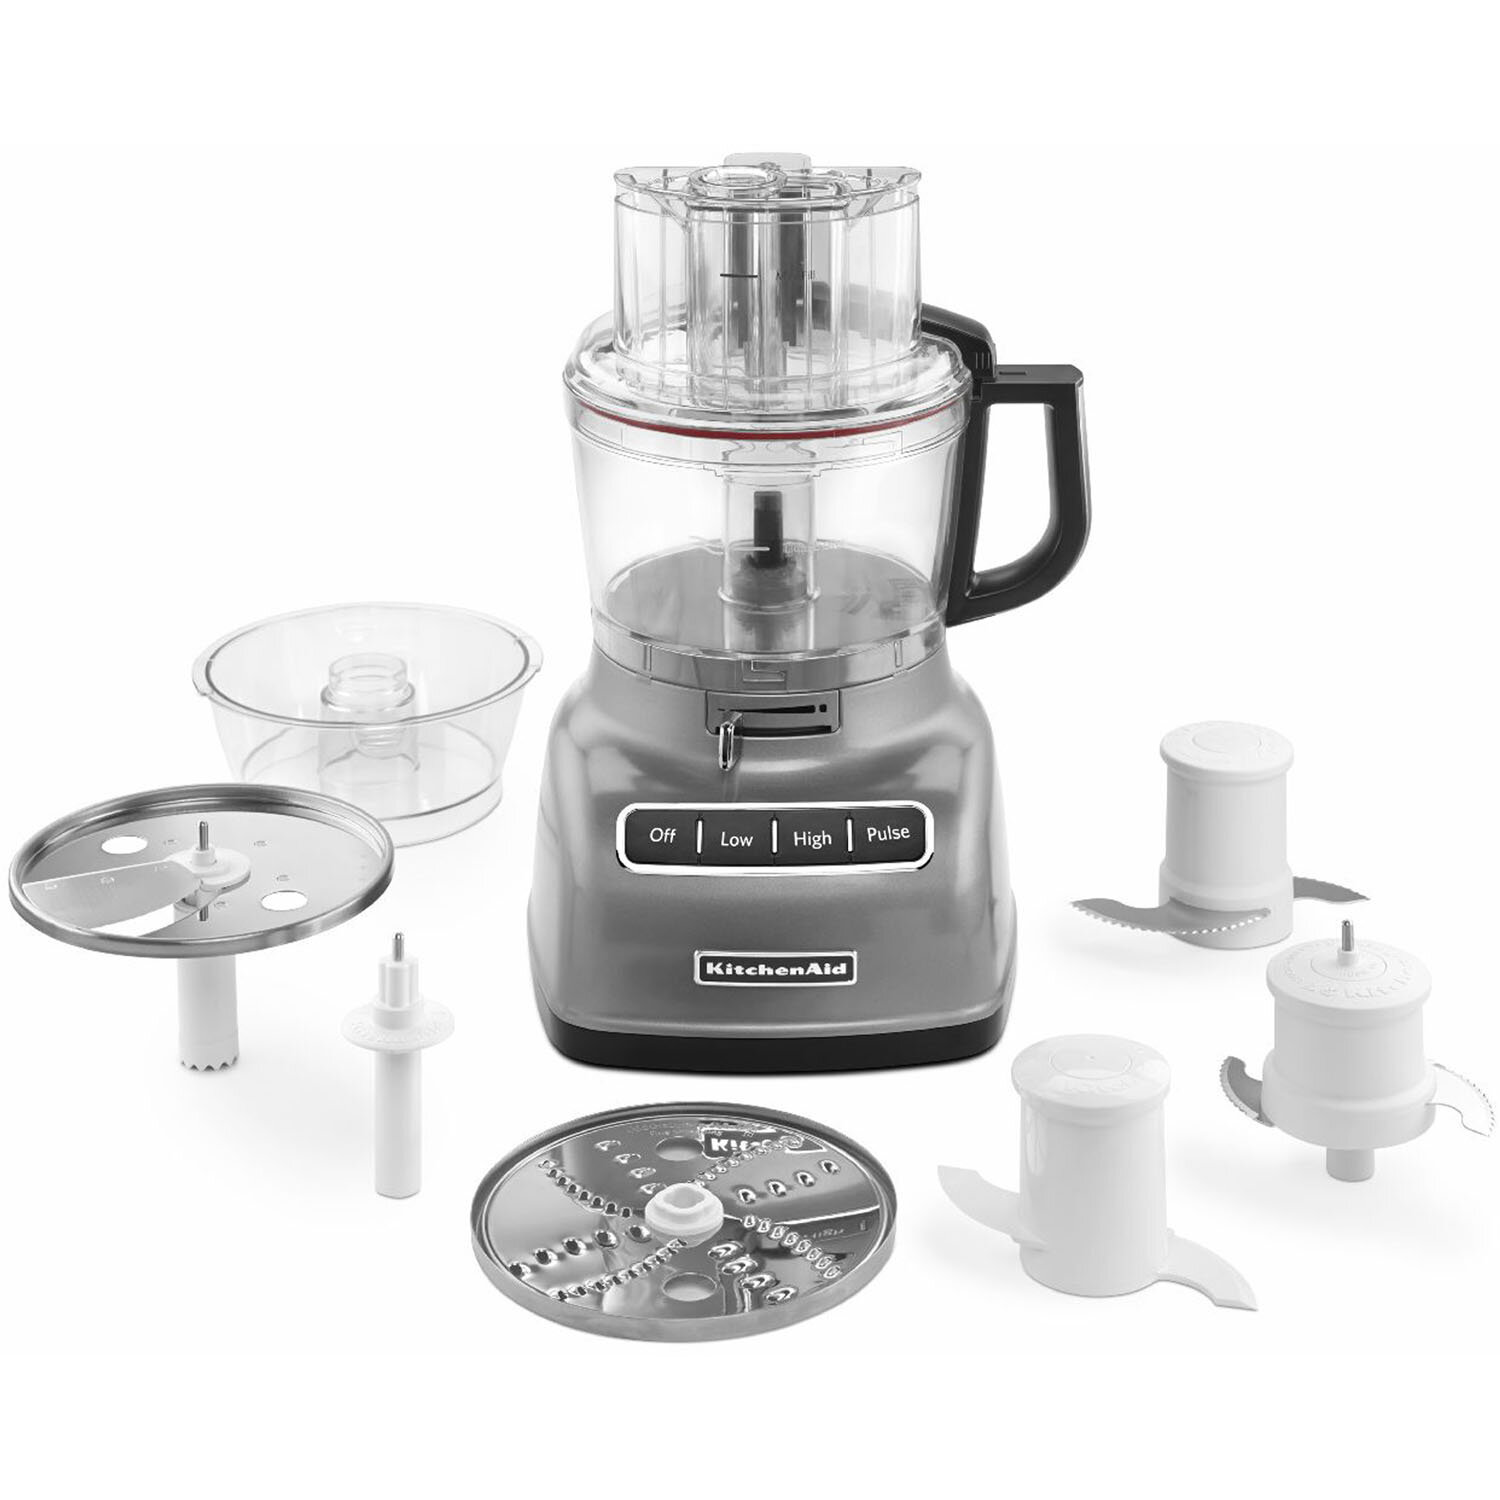 Kitchenaid 9 Cup Food Processor With Exactslice System And External Adjule Lever Reviews Wayfair